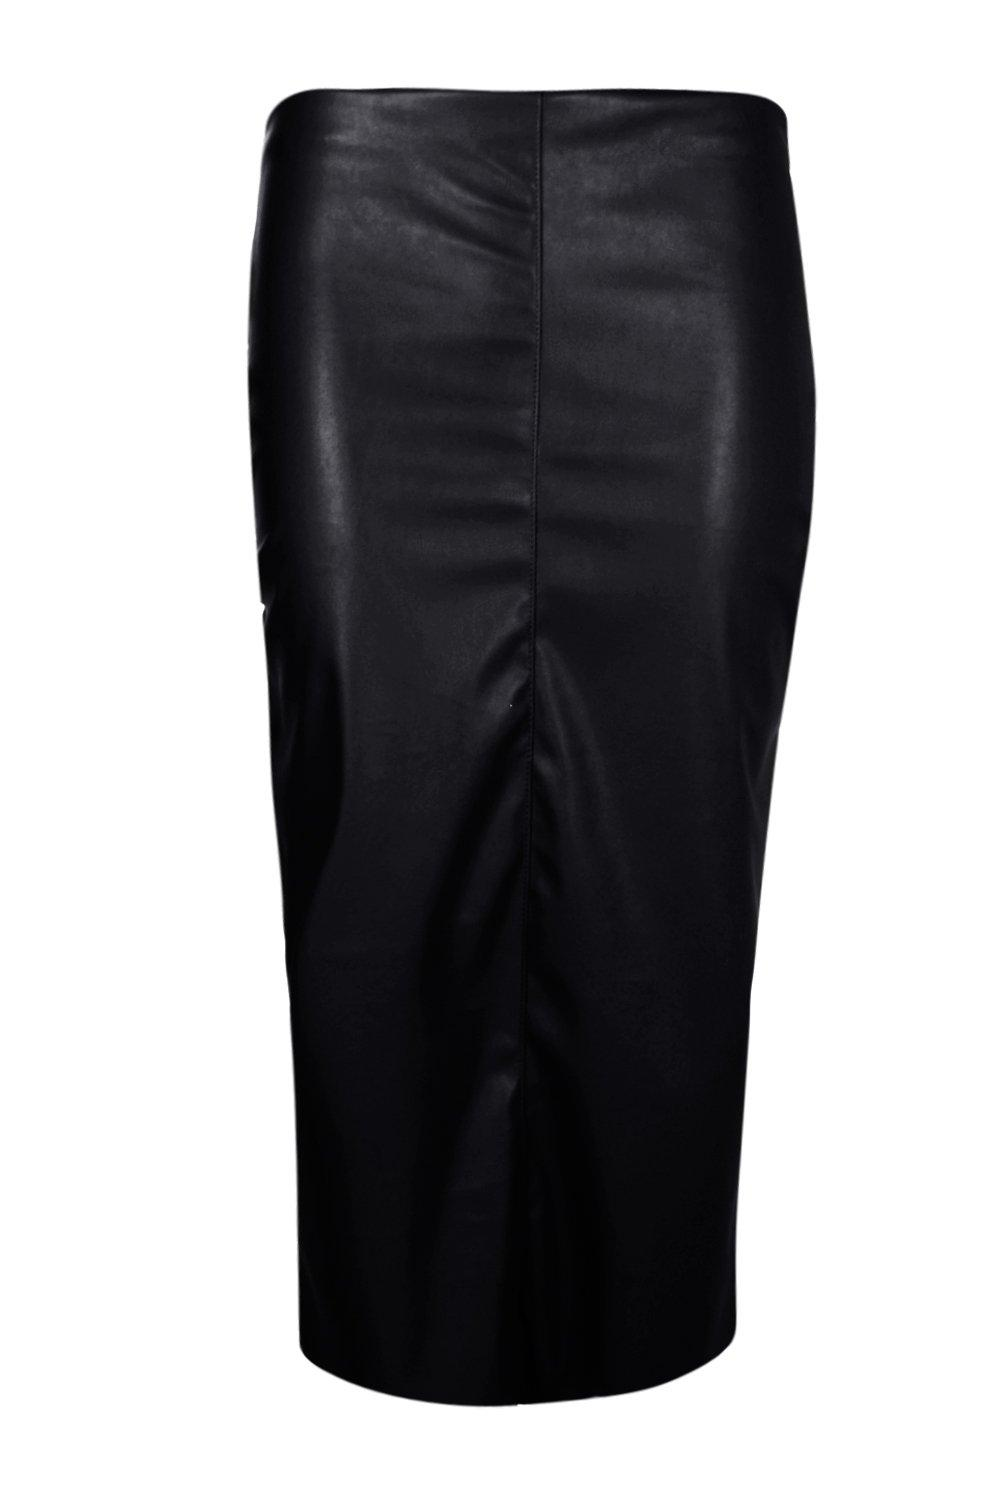 Loren Leather Look Midi Skirt at boohoo.com